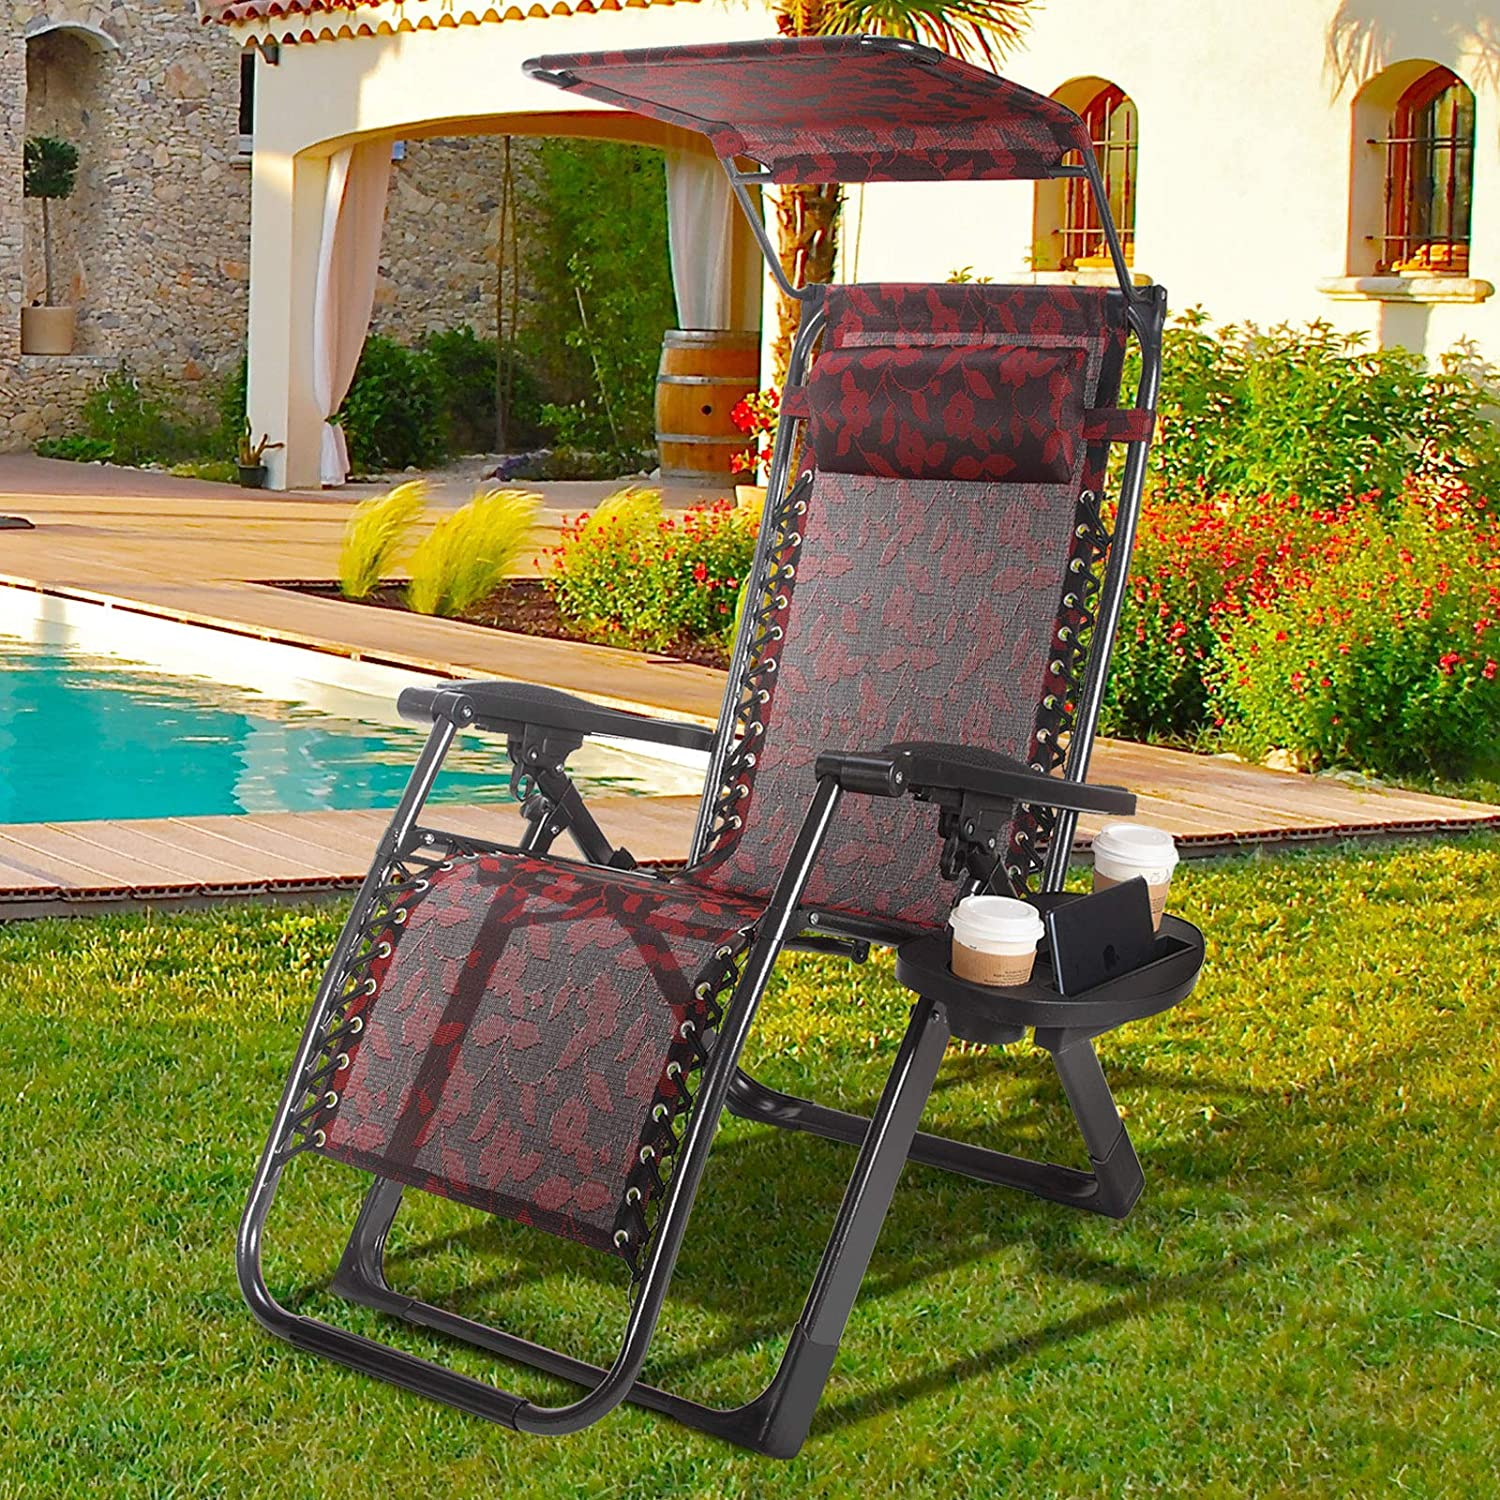 Heavy Duty Zero Gravity Lounge Chair Recliner Seats Durable Backrest Sunshade Canopy Cup Holder Tray Handle to Carry for Travel Beach Pool 1 Piece Chair